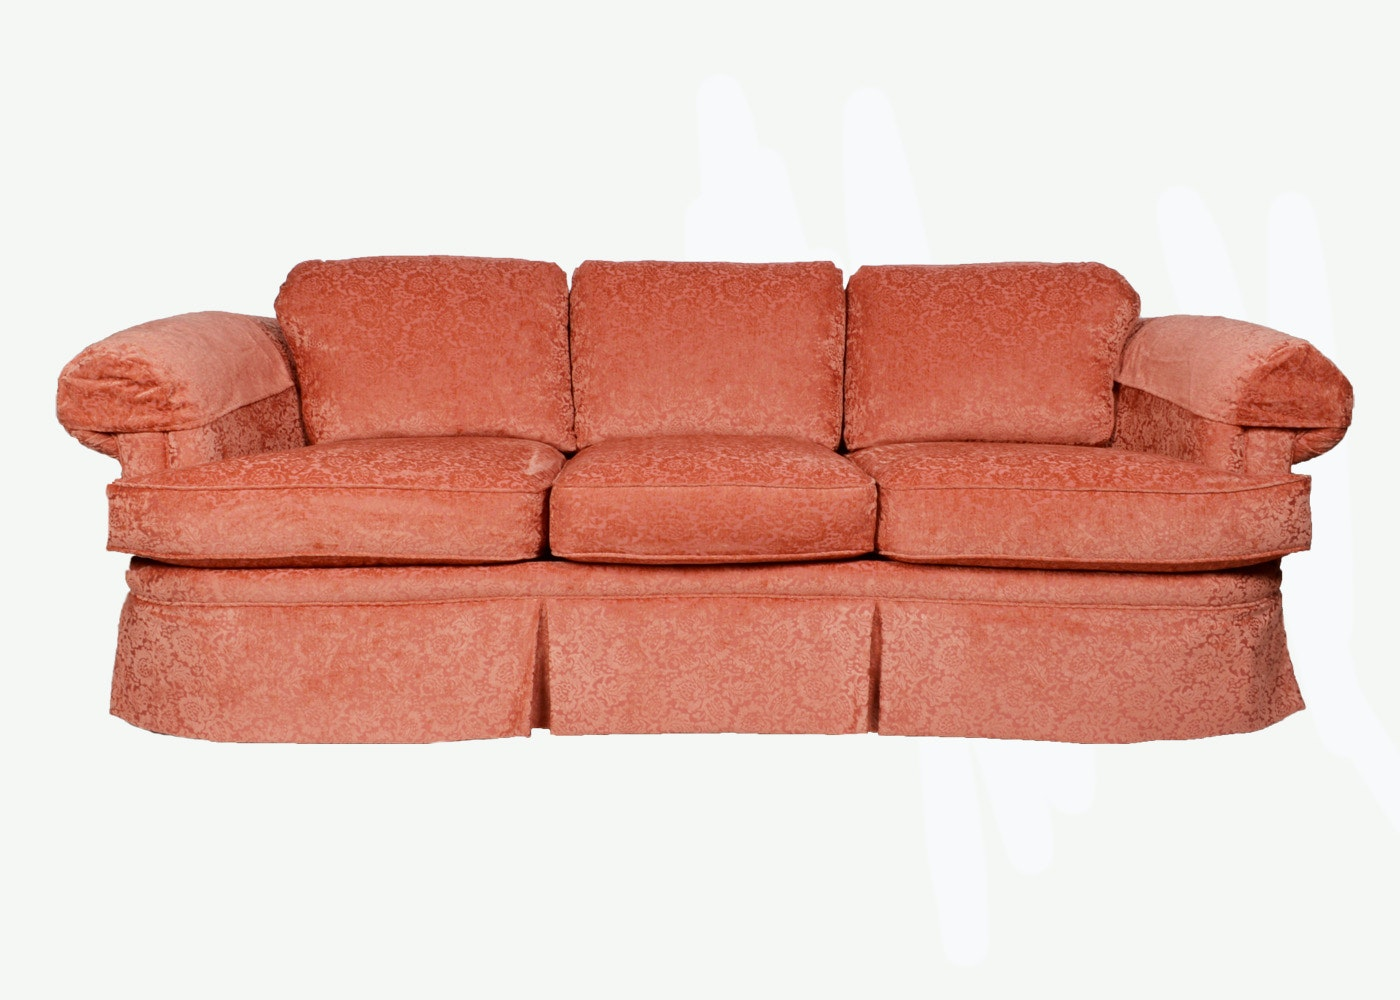 Plush Salmon Colored Sofa